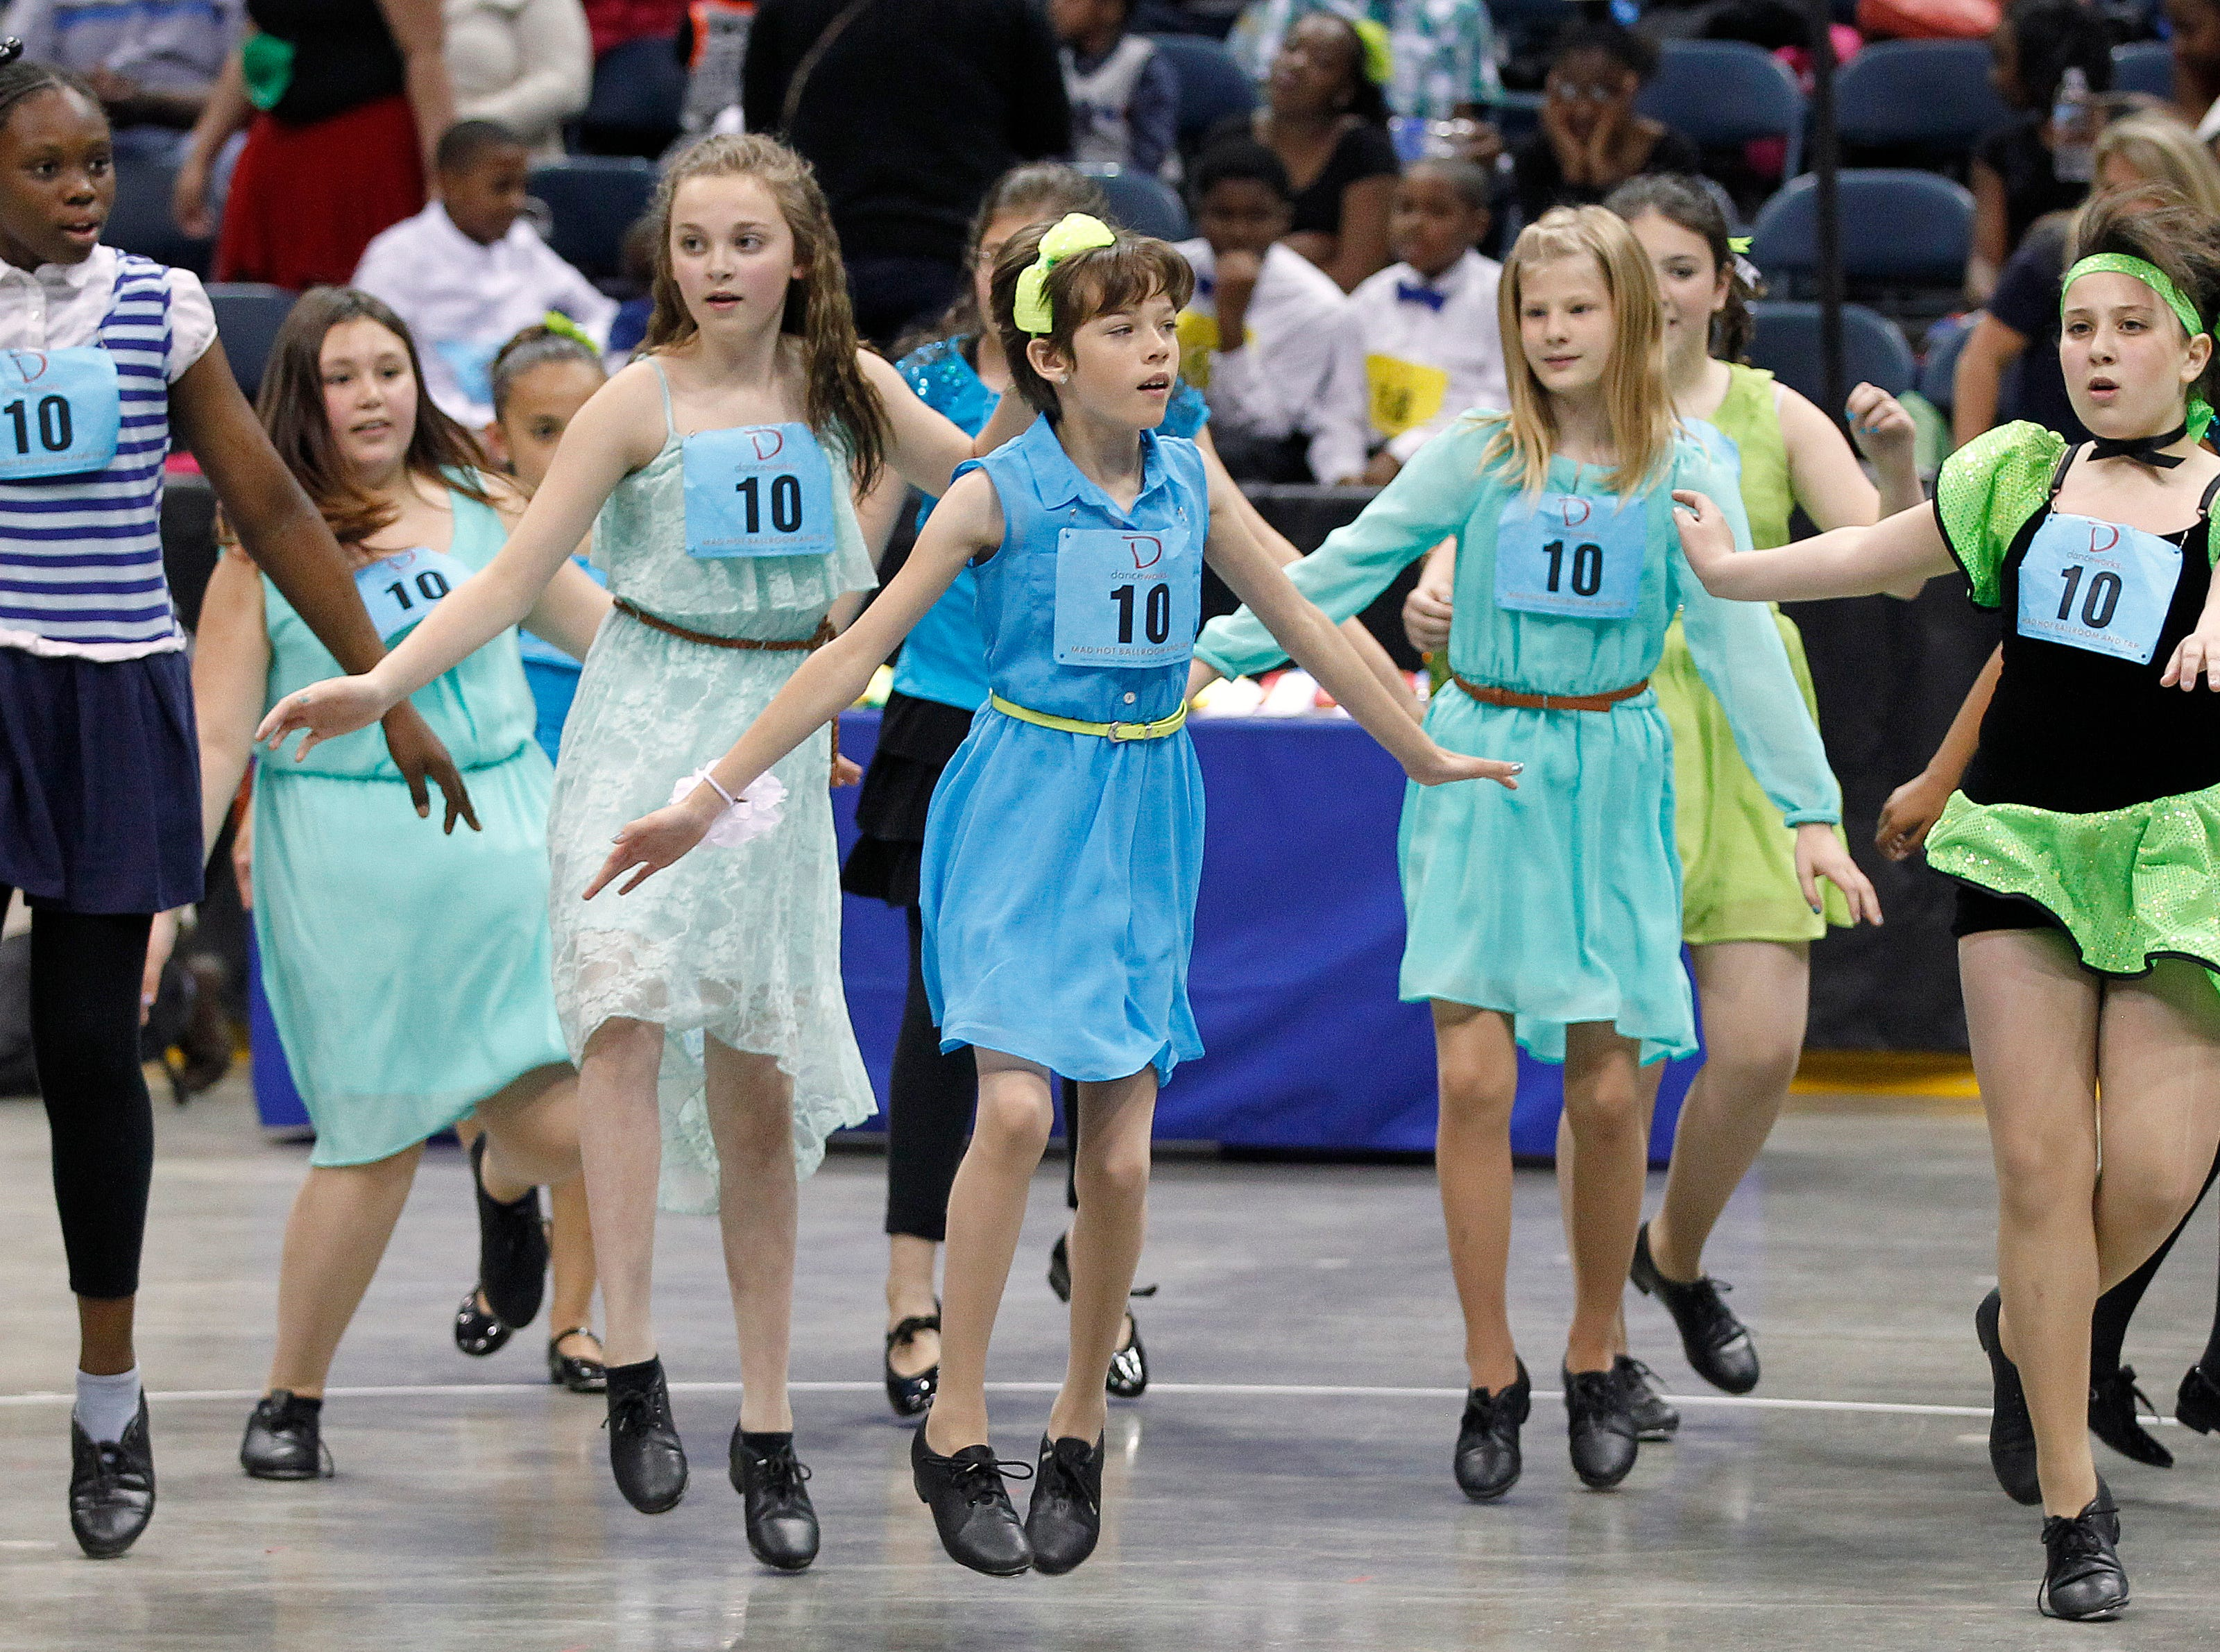 2014: Students from Elm Dale Elementary School dance during the annual Mad Hot Ballroom and Tap competition at the BMO Harris Bradley Center.